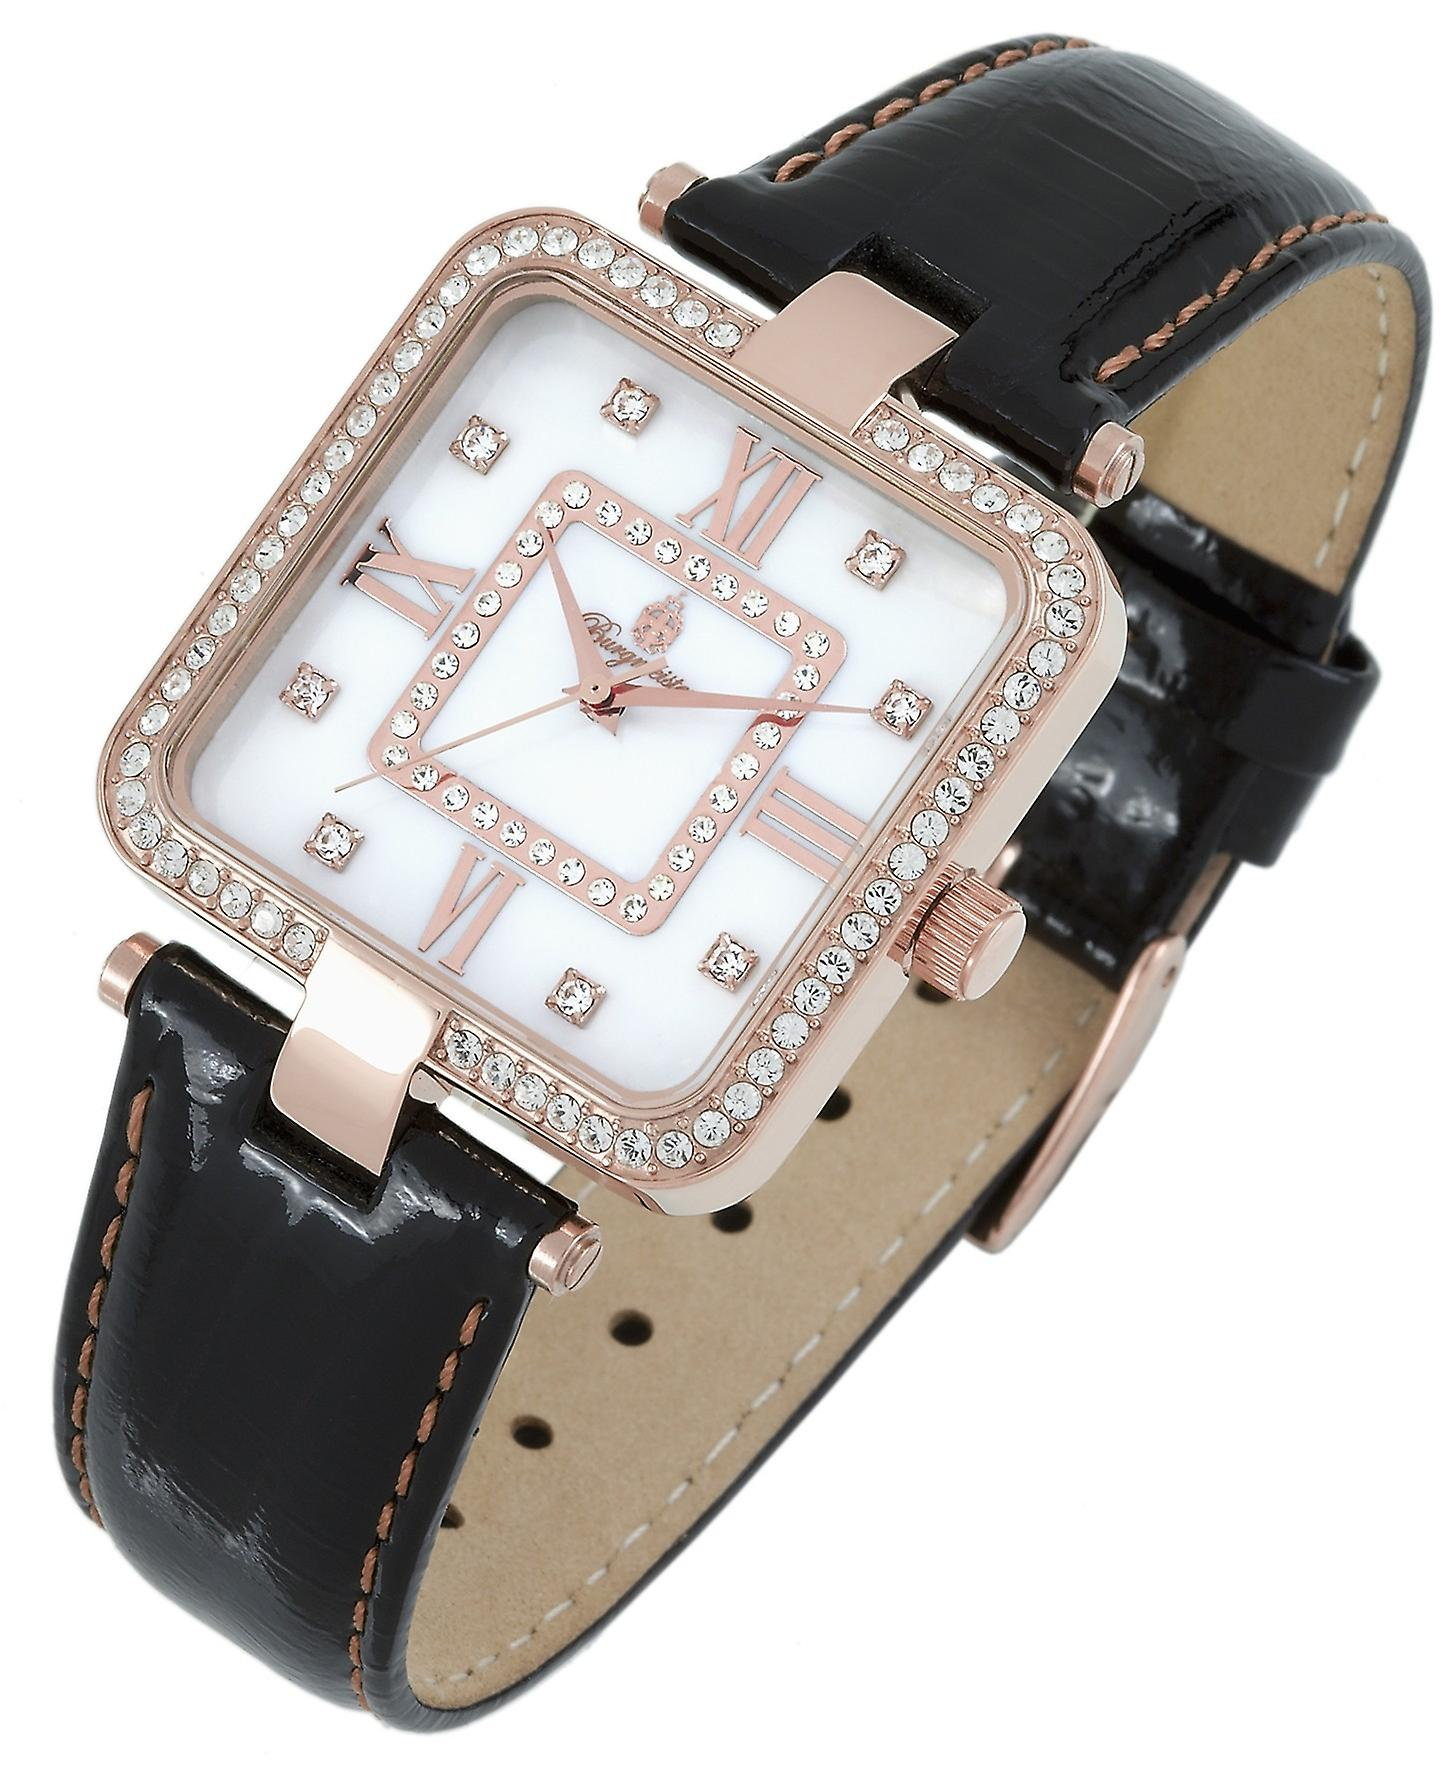 Burgmeister ladies quartz watch Accra BM515-382